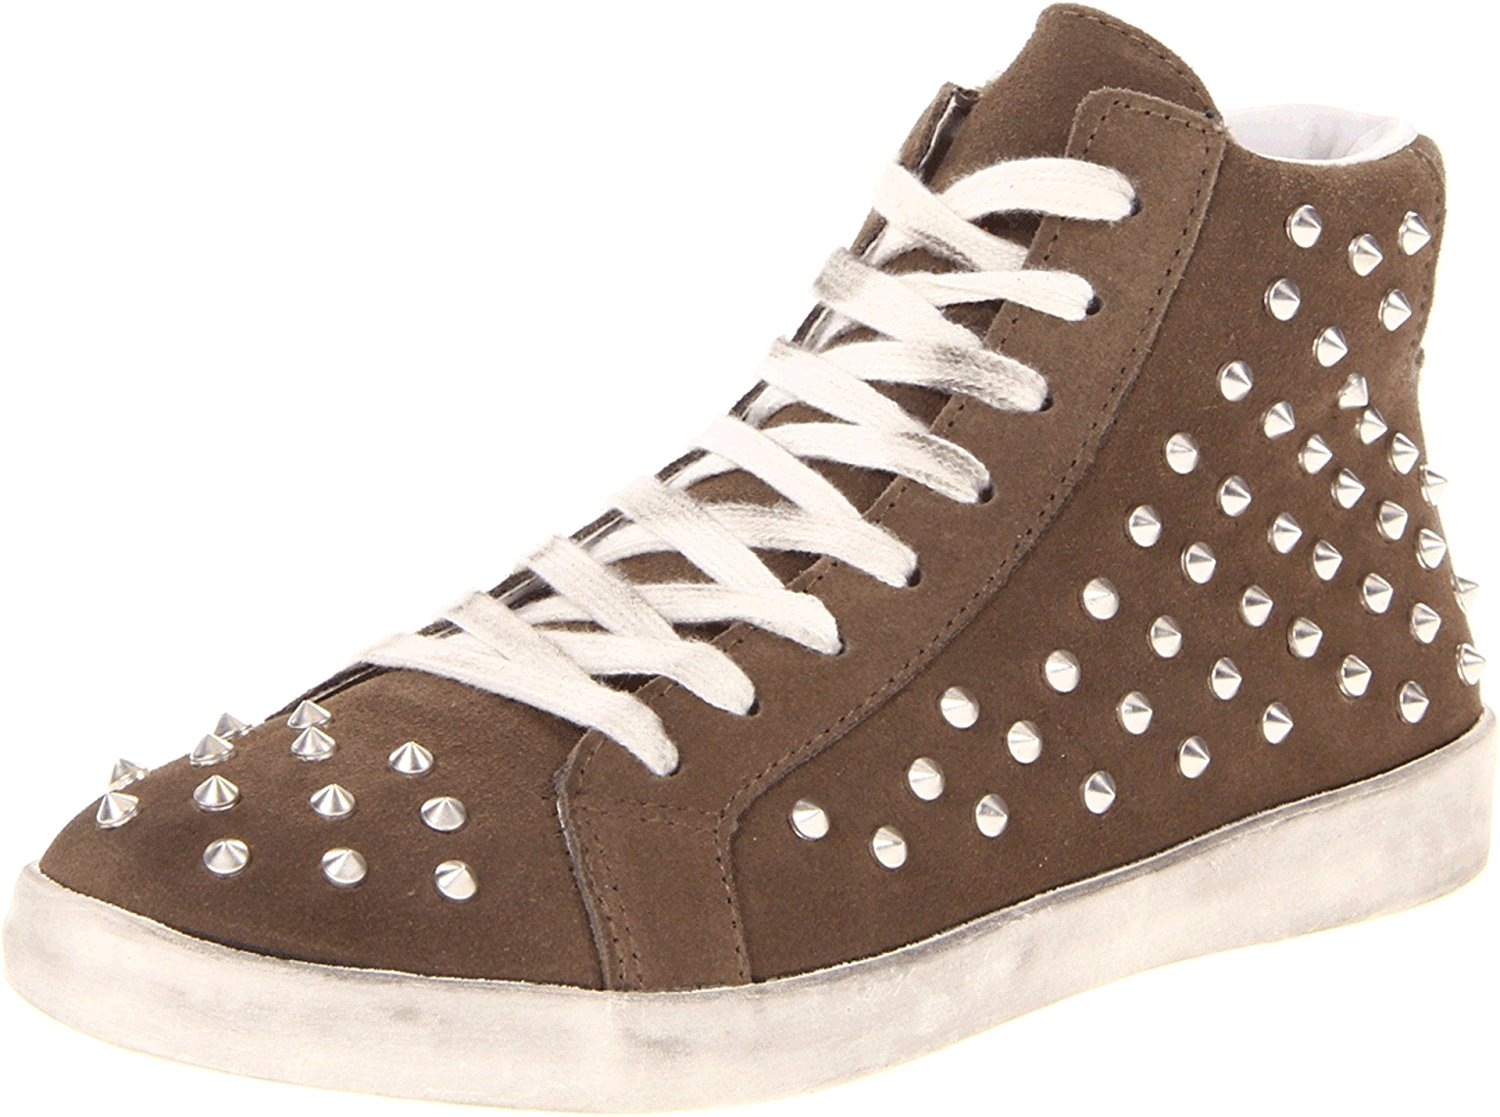 Steve Madden Women's Twynkle Distressed Studded Sneaker Taupe Suede Size 7.5